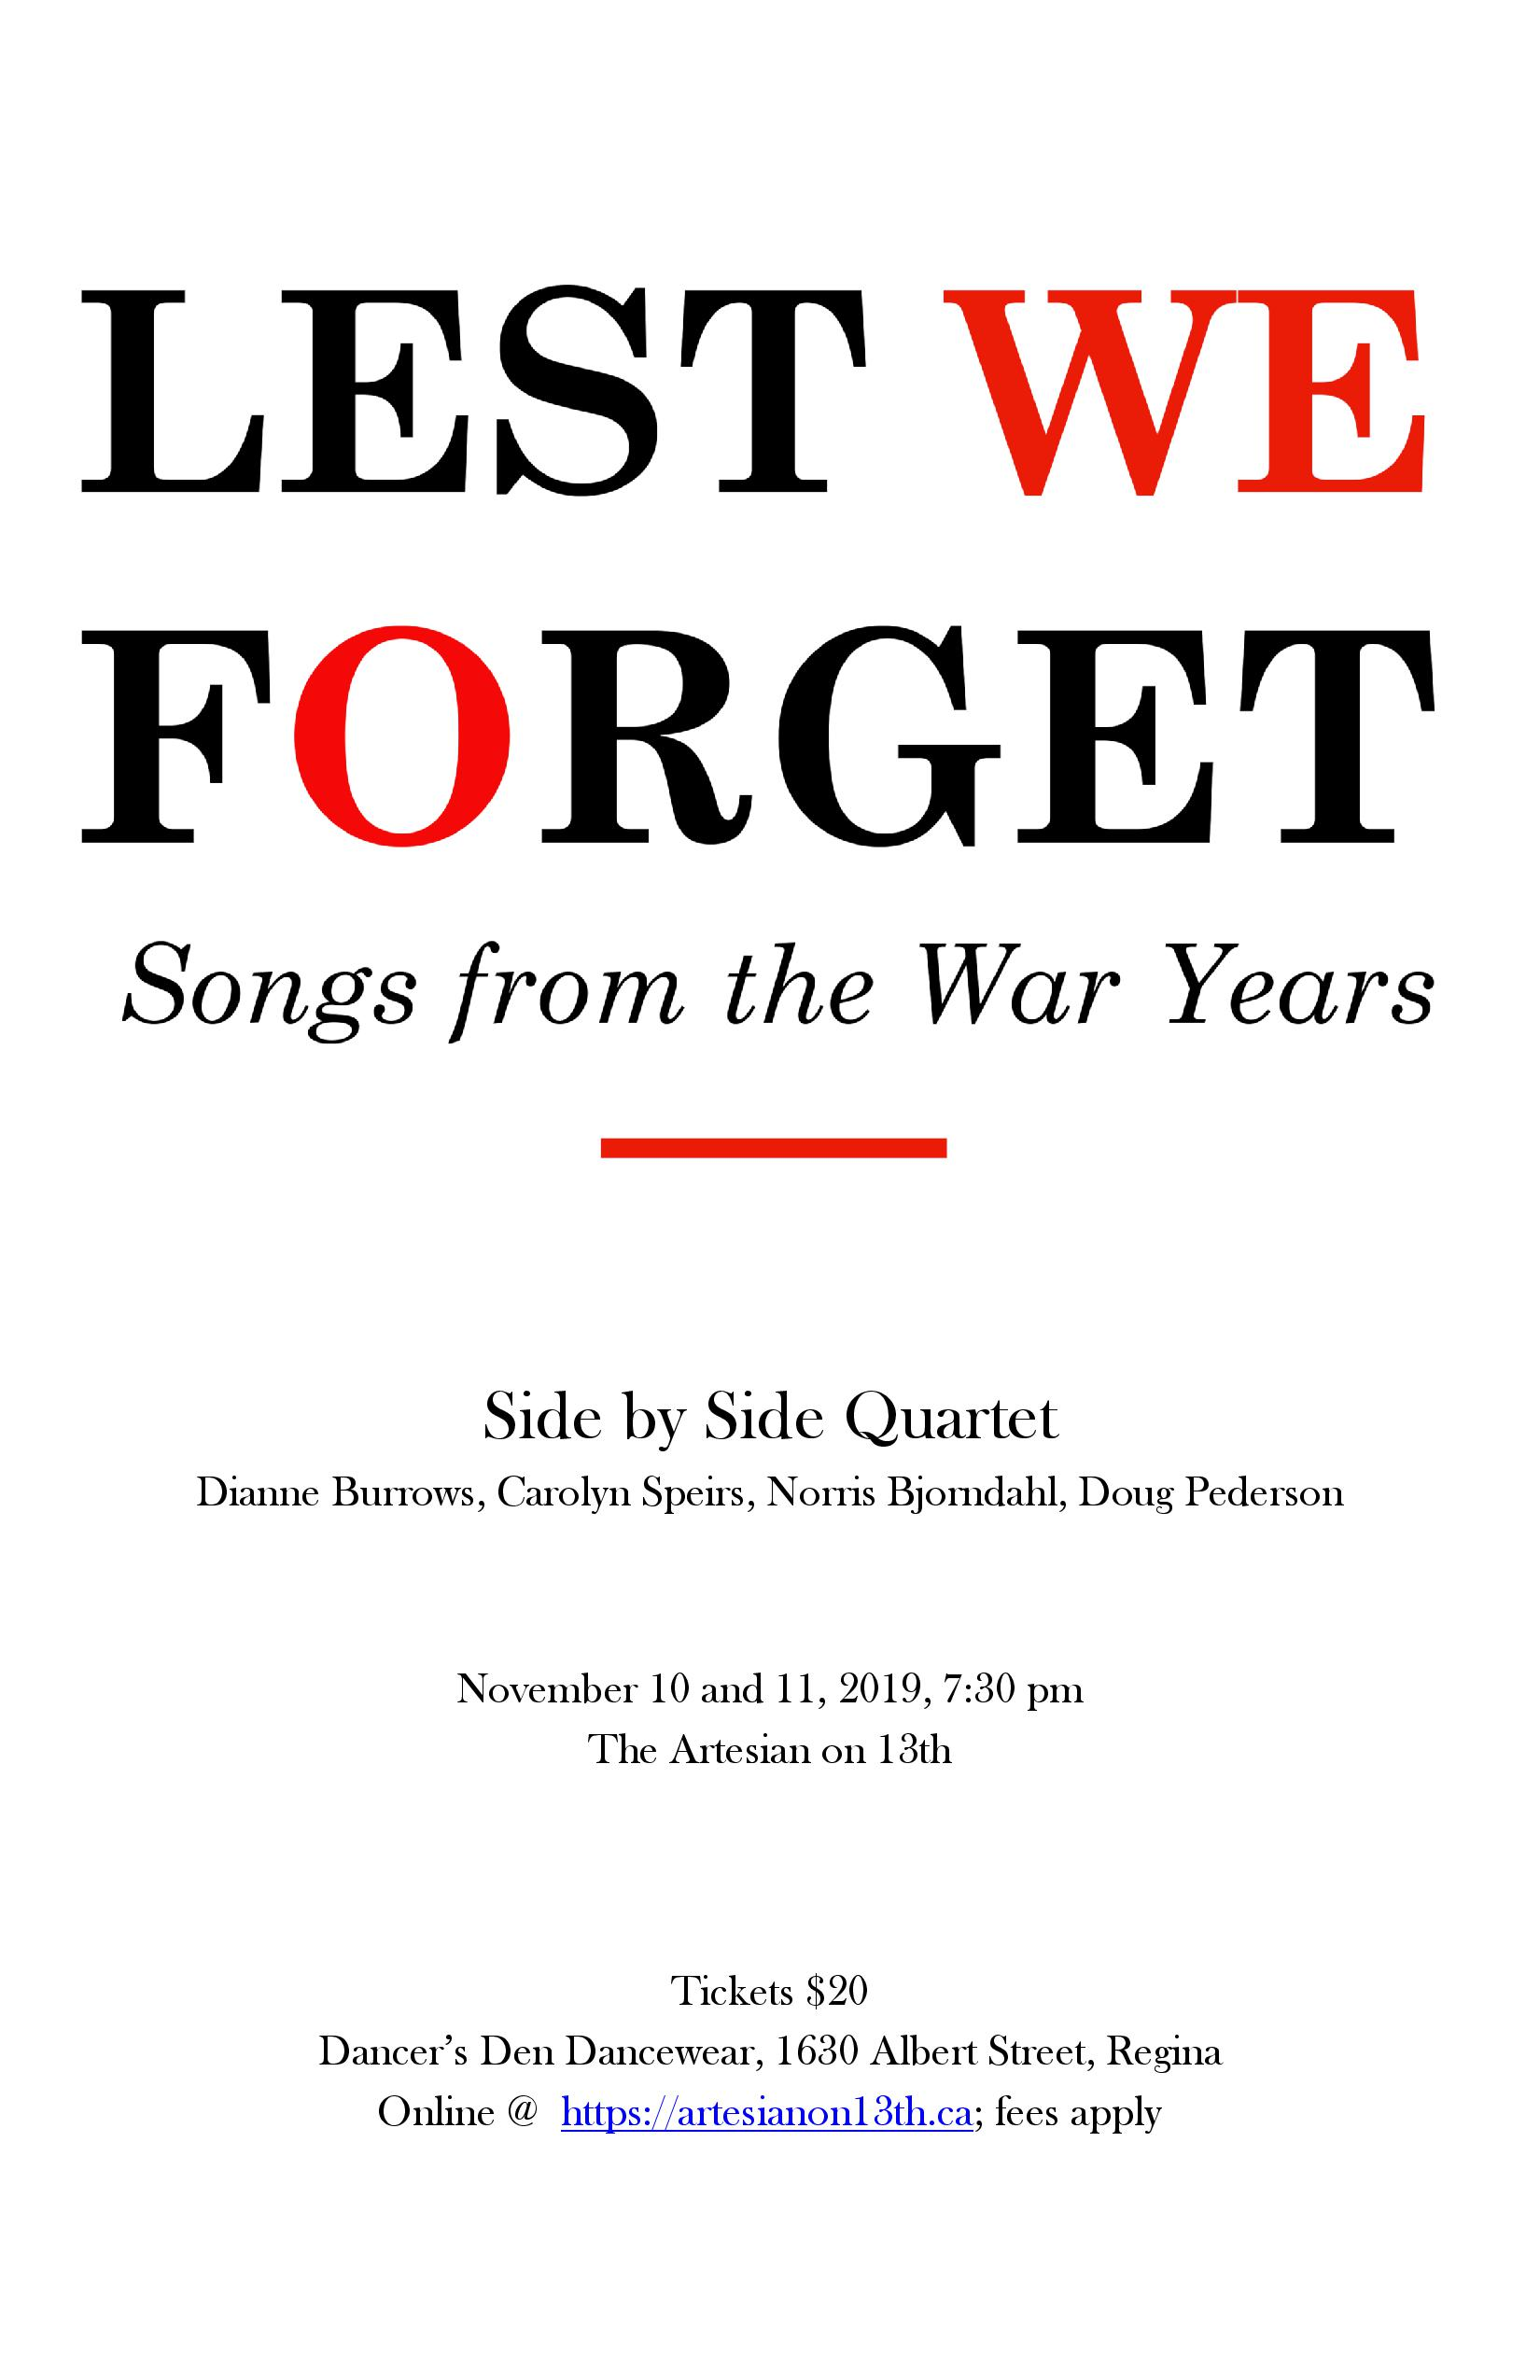 Lest We Forget - Songs From the War Years